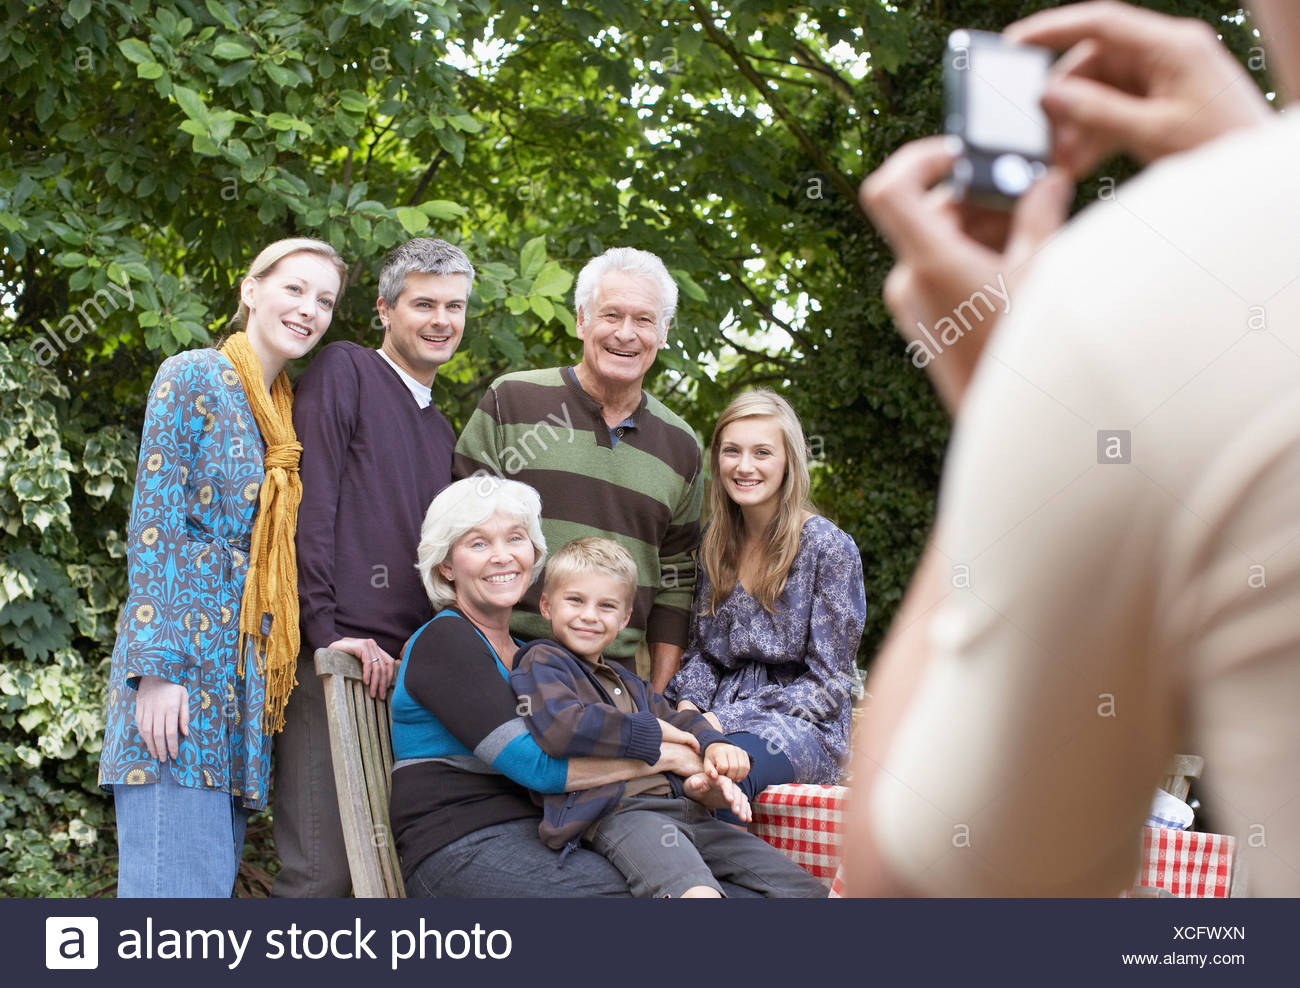 Man taking photograph of family - Stock Image